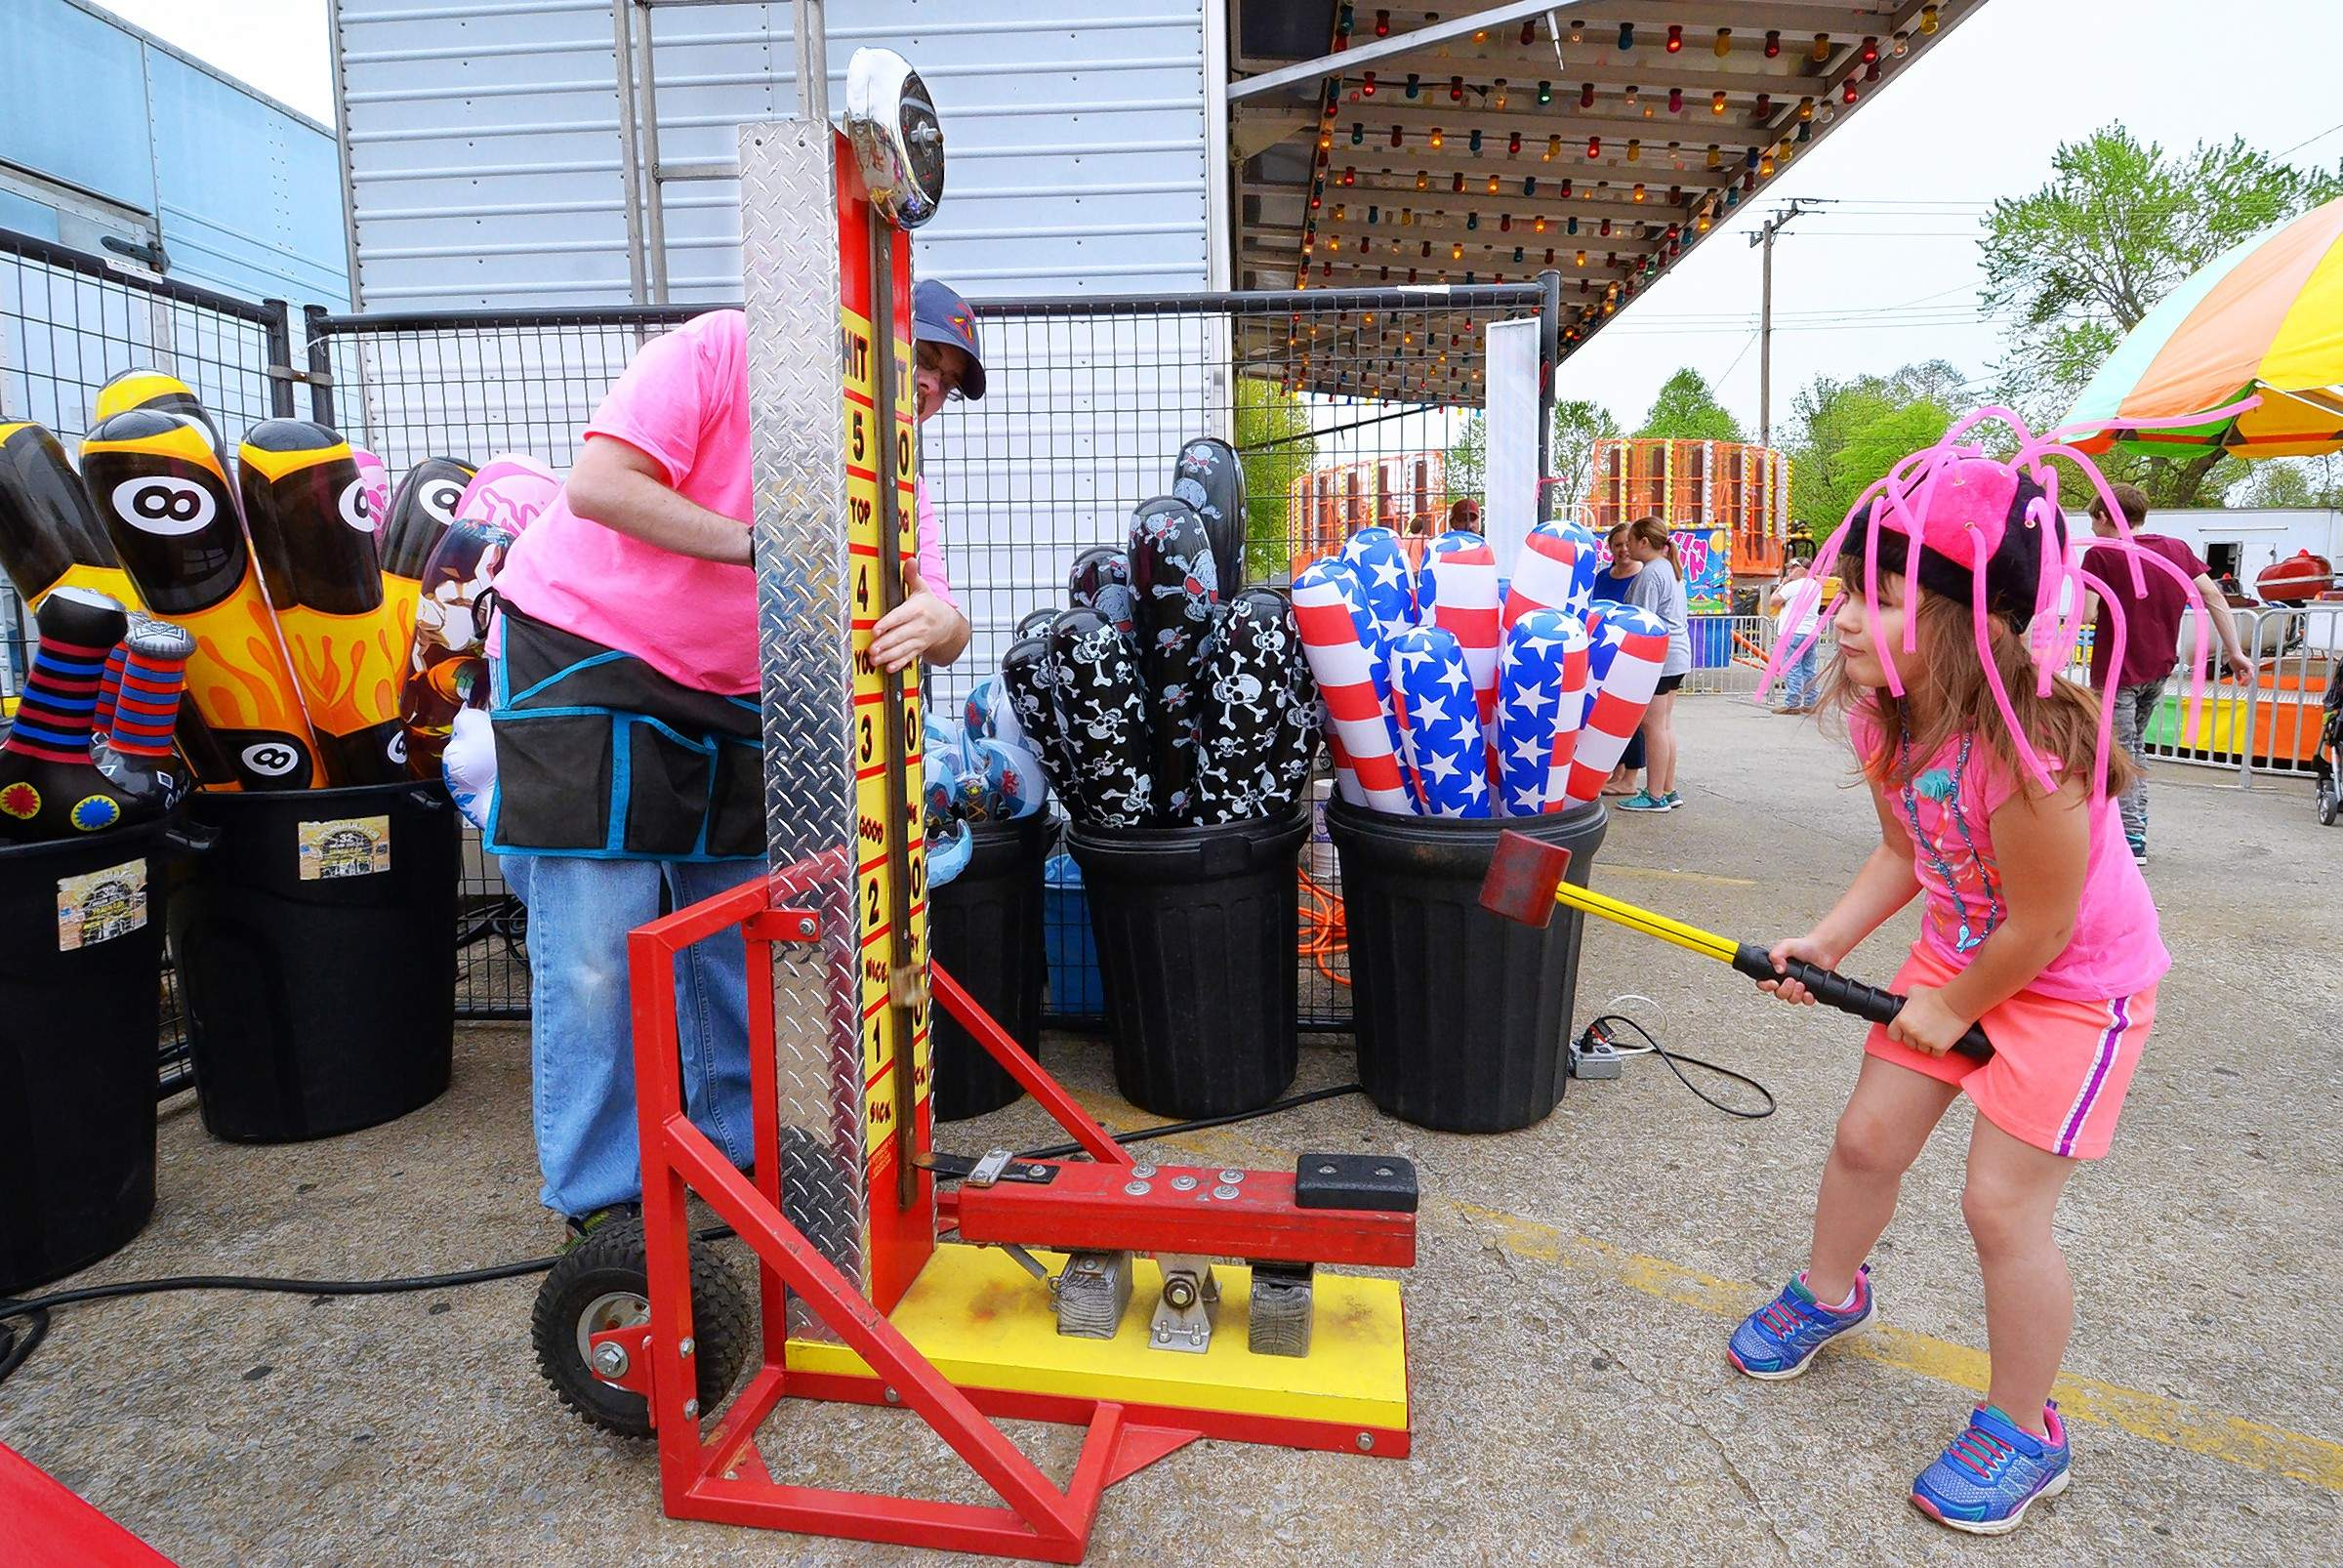 Ovanjolene Renee Finstad, 6, tried her hand at trying to ring the bell on this carnival attraction Friday night at the Rend Lake Water Festival in Benton. She waswith mom Keith and Amanda Finstad of Christopher.